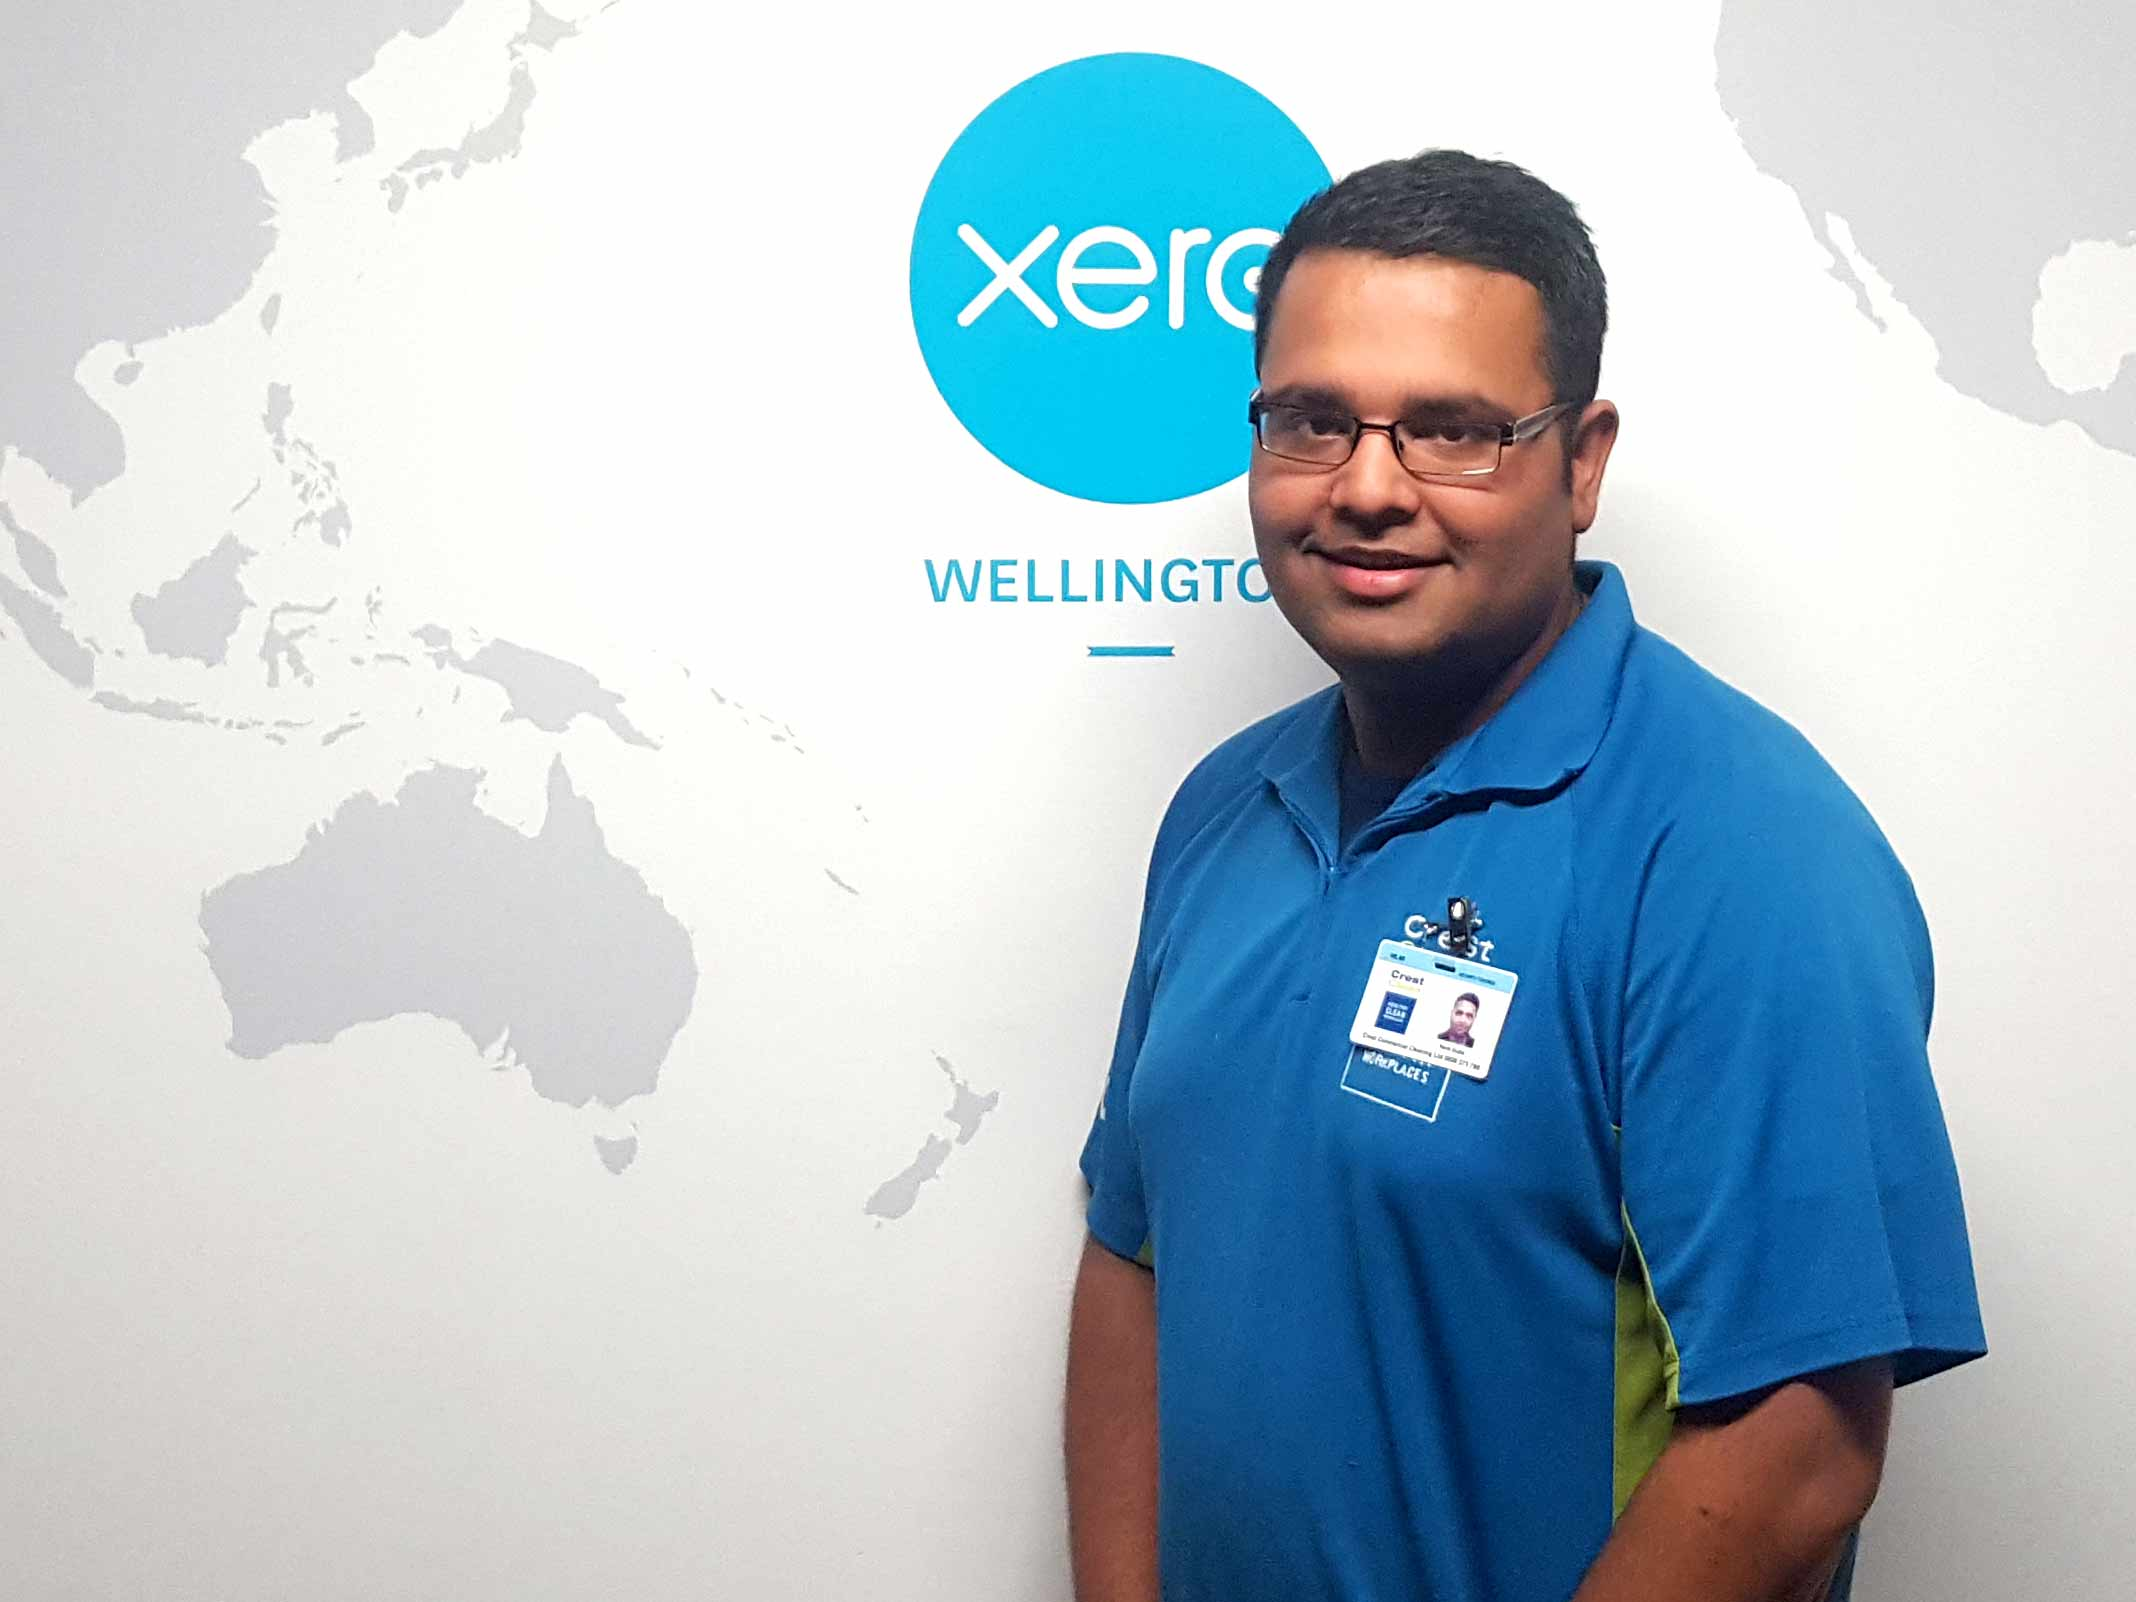 Naval Gupta loves working at Xero where he says he's treated like a member of staff.